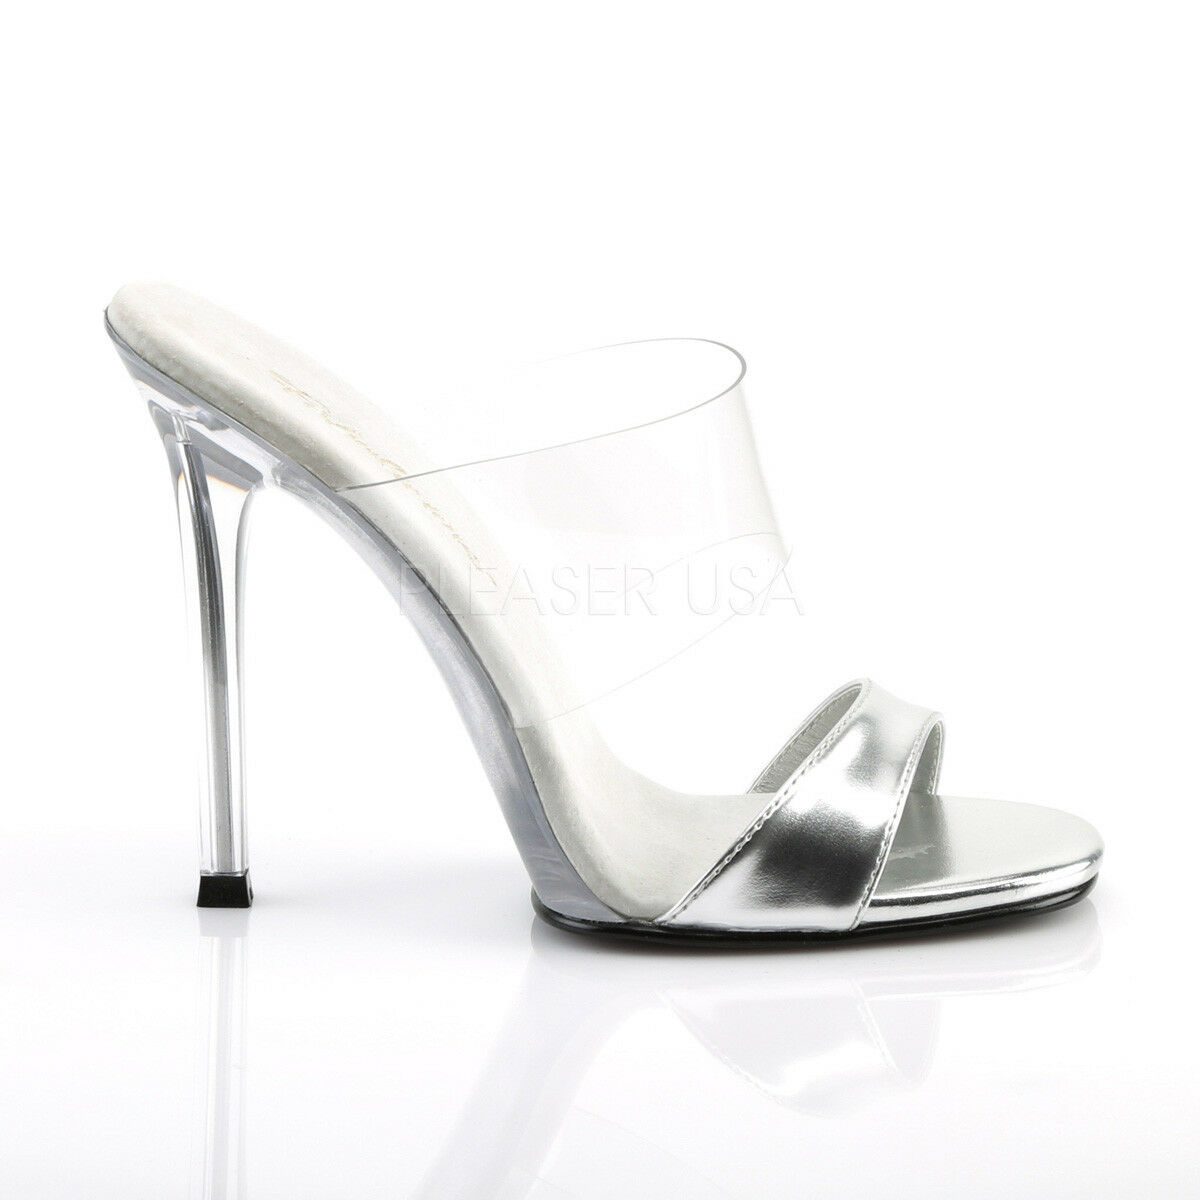 GALA-02L New Clear Posing Fitness Competition comp Heel Fast Post Size 6 - 39